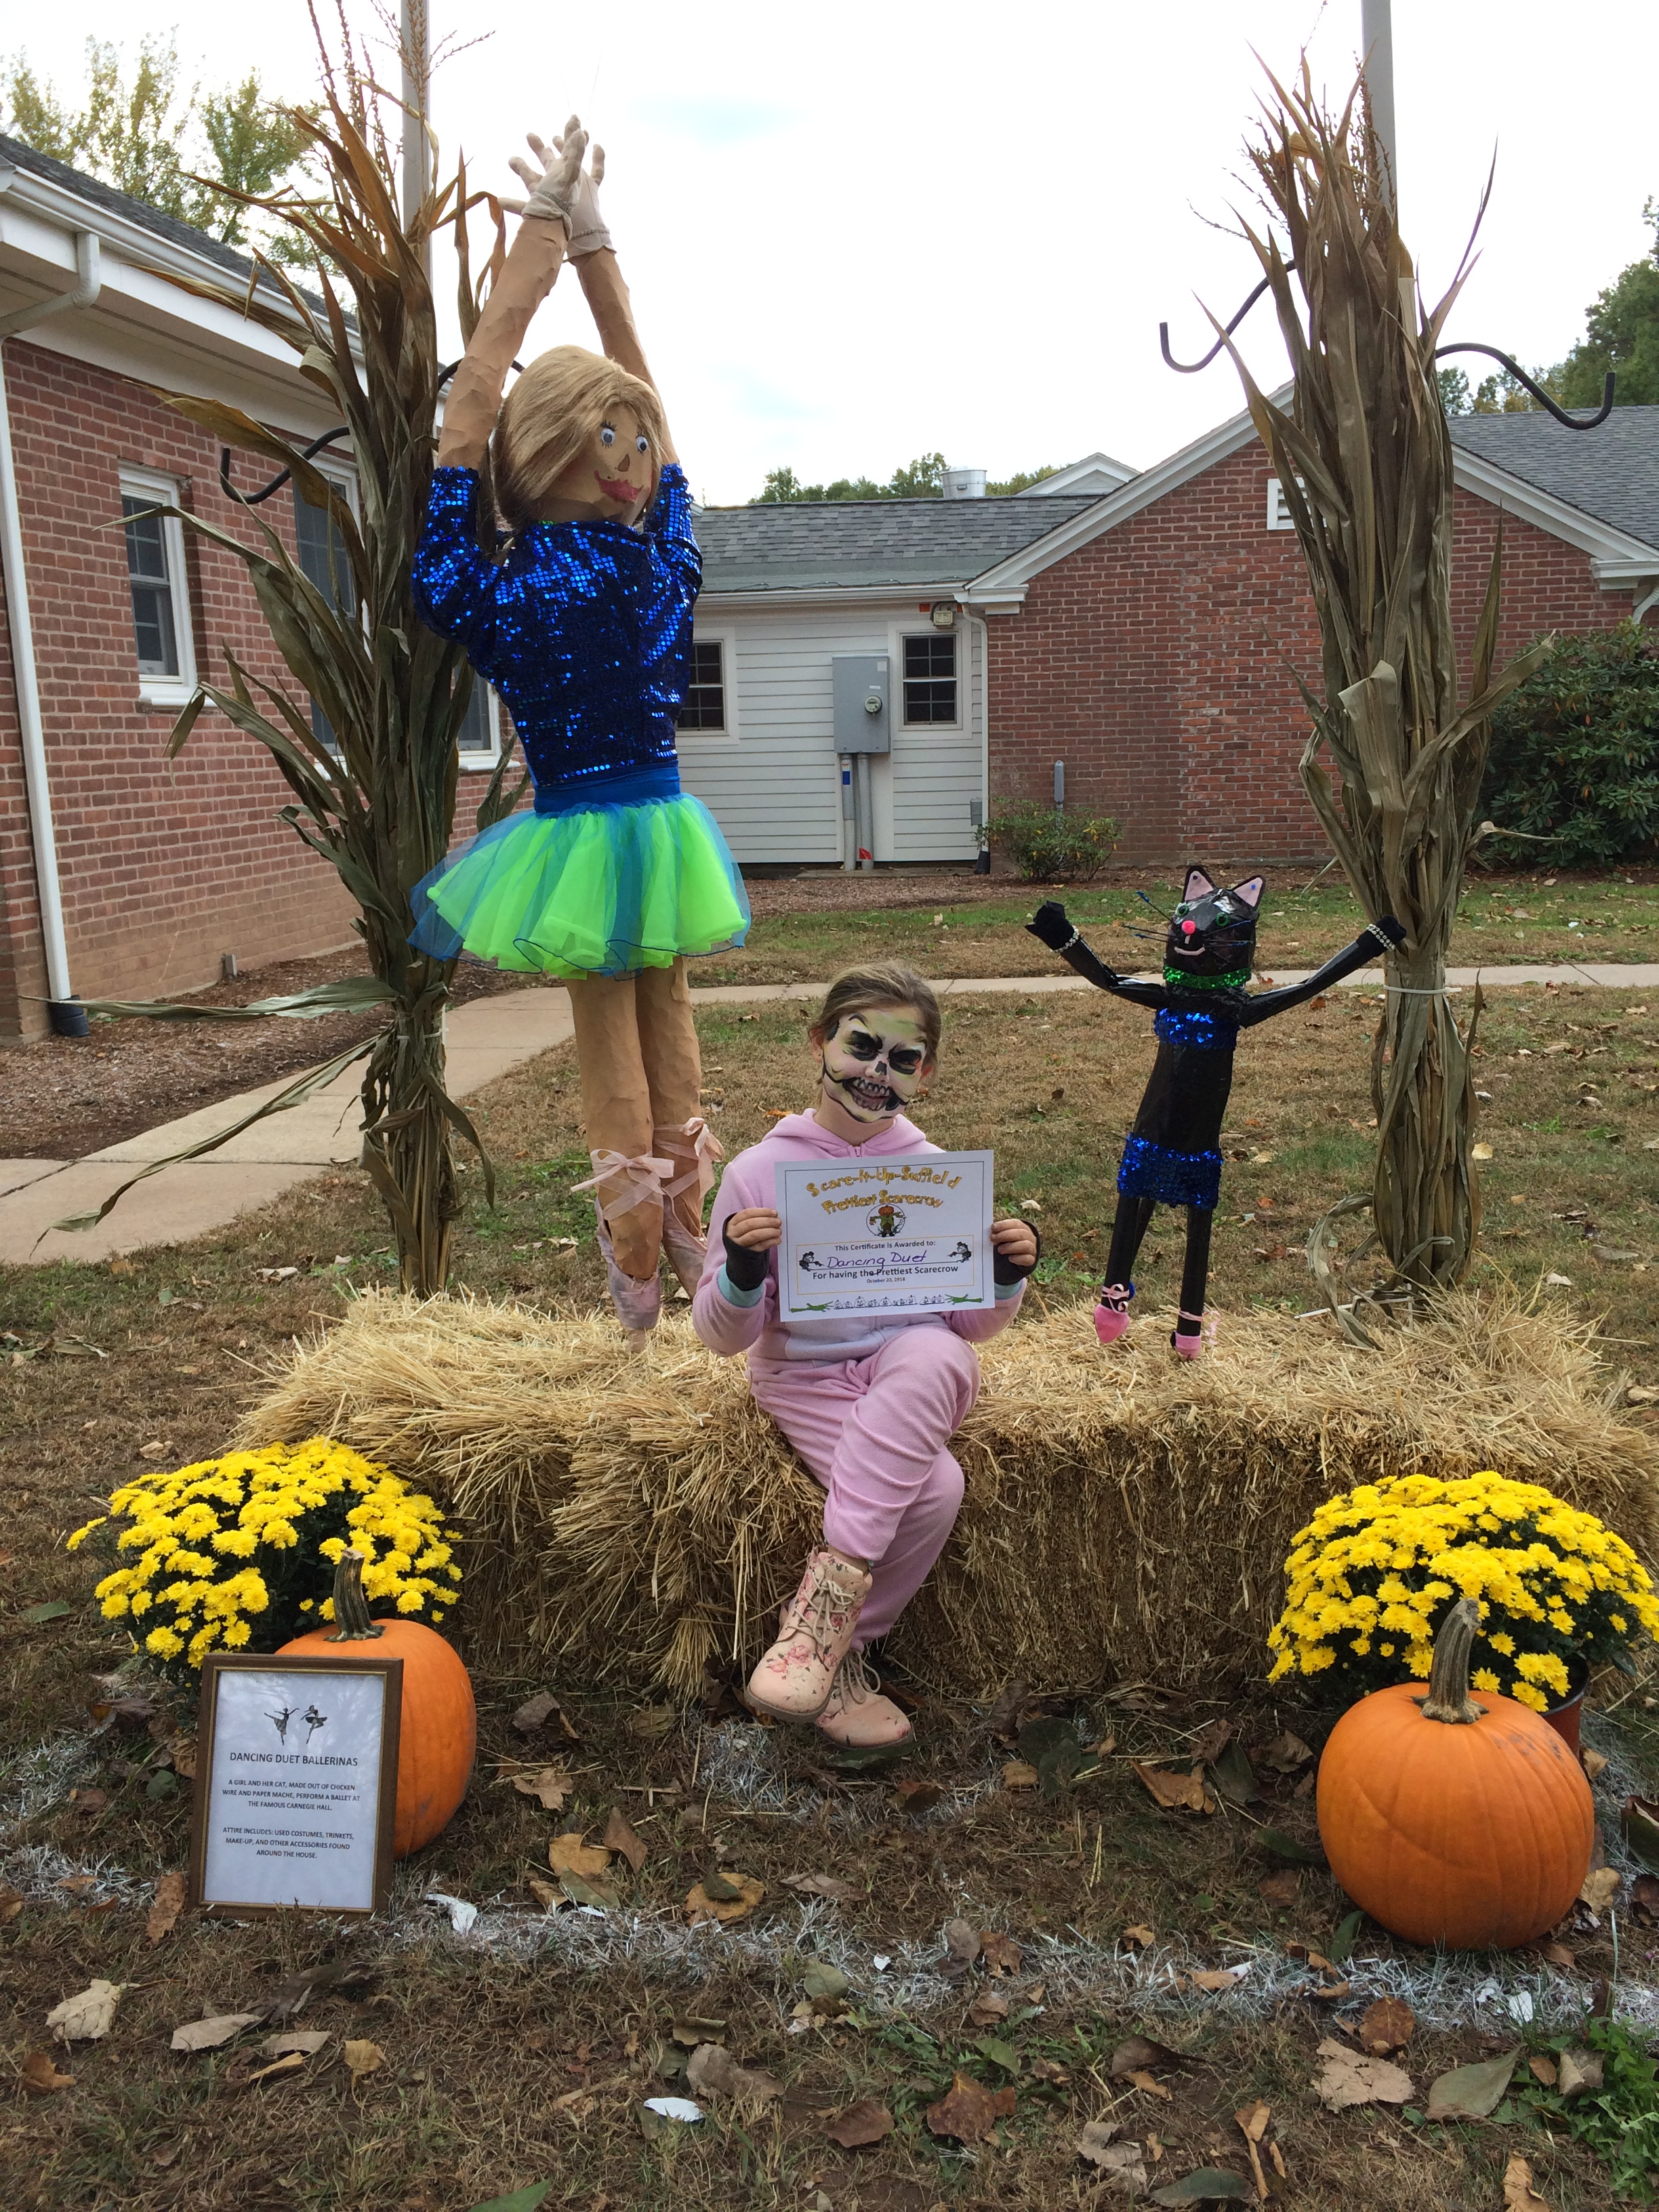 A duet of dancing scarecrows won the Prettiest Scarecrow Award at the Suffield Scarecrow Contest on Saturday. NBC Connecticut's Alessandra Martinez was the emcee for the event, which was part of